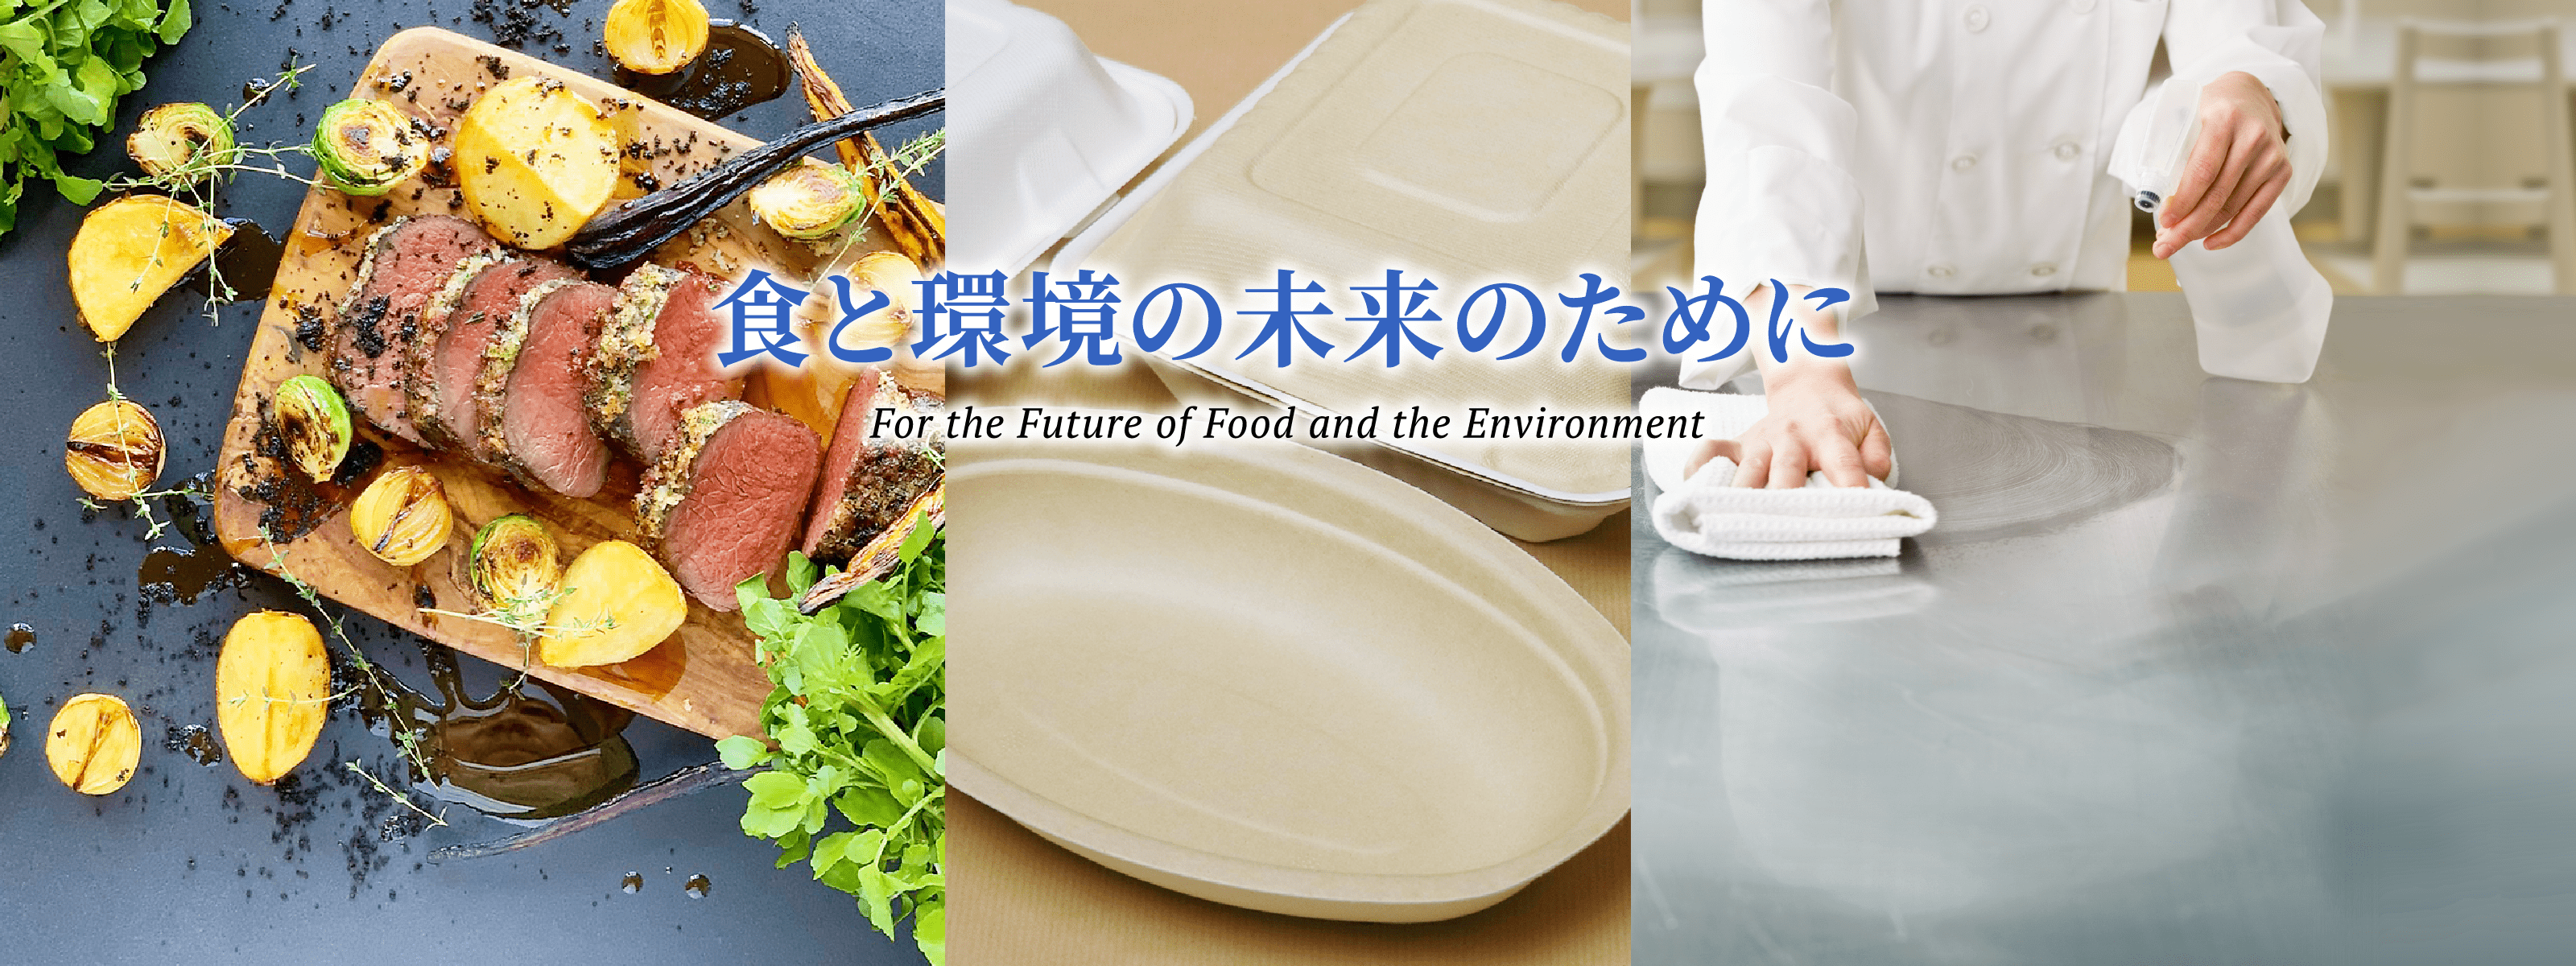 食と環境の未来のために For the Future of Food and the Environment